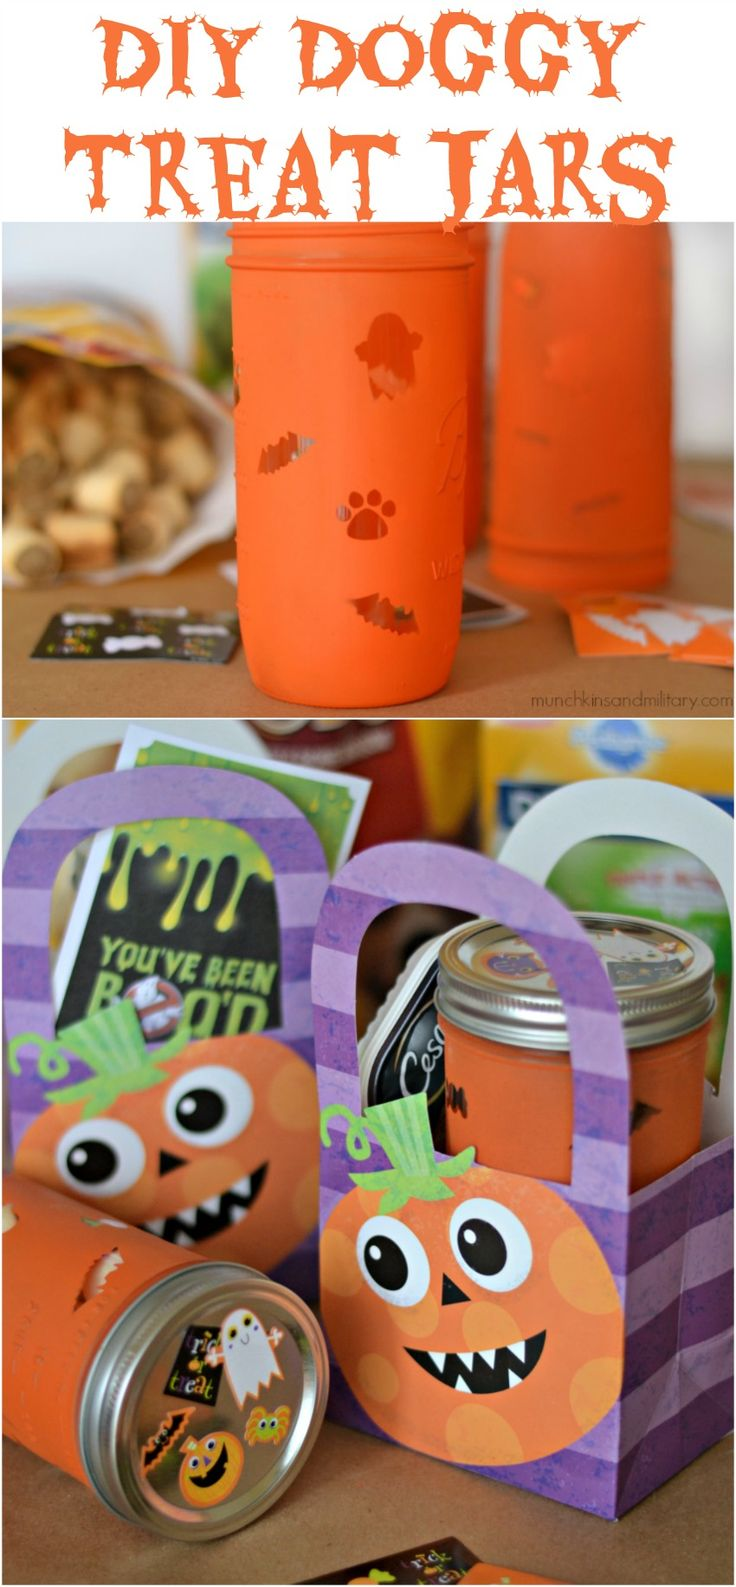 DIY Doggy Treat Jars For Halloween